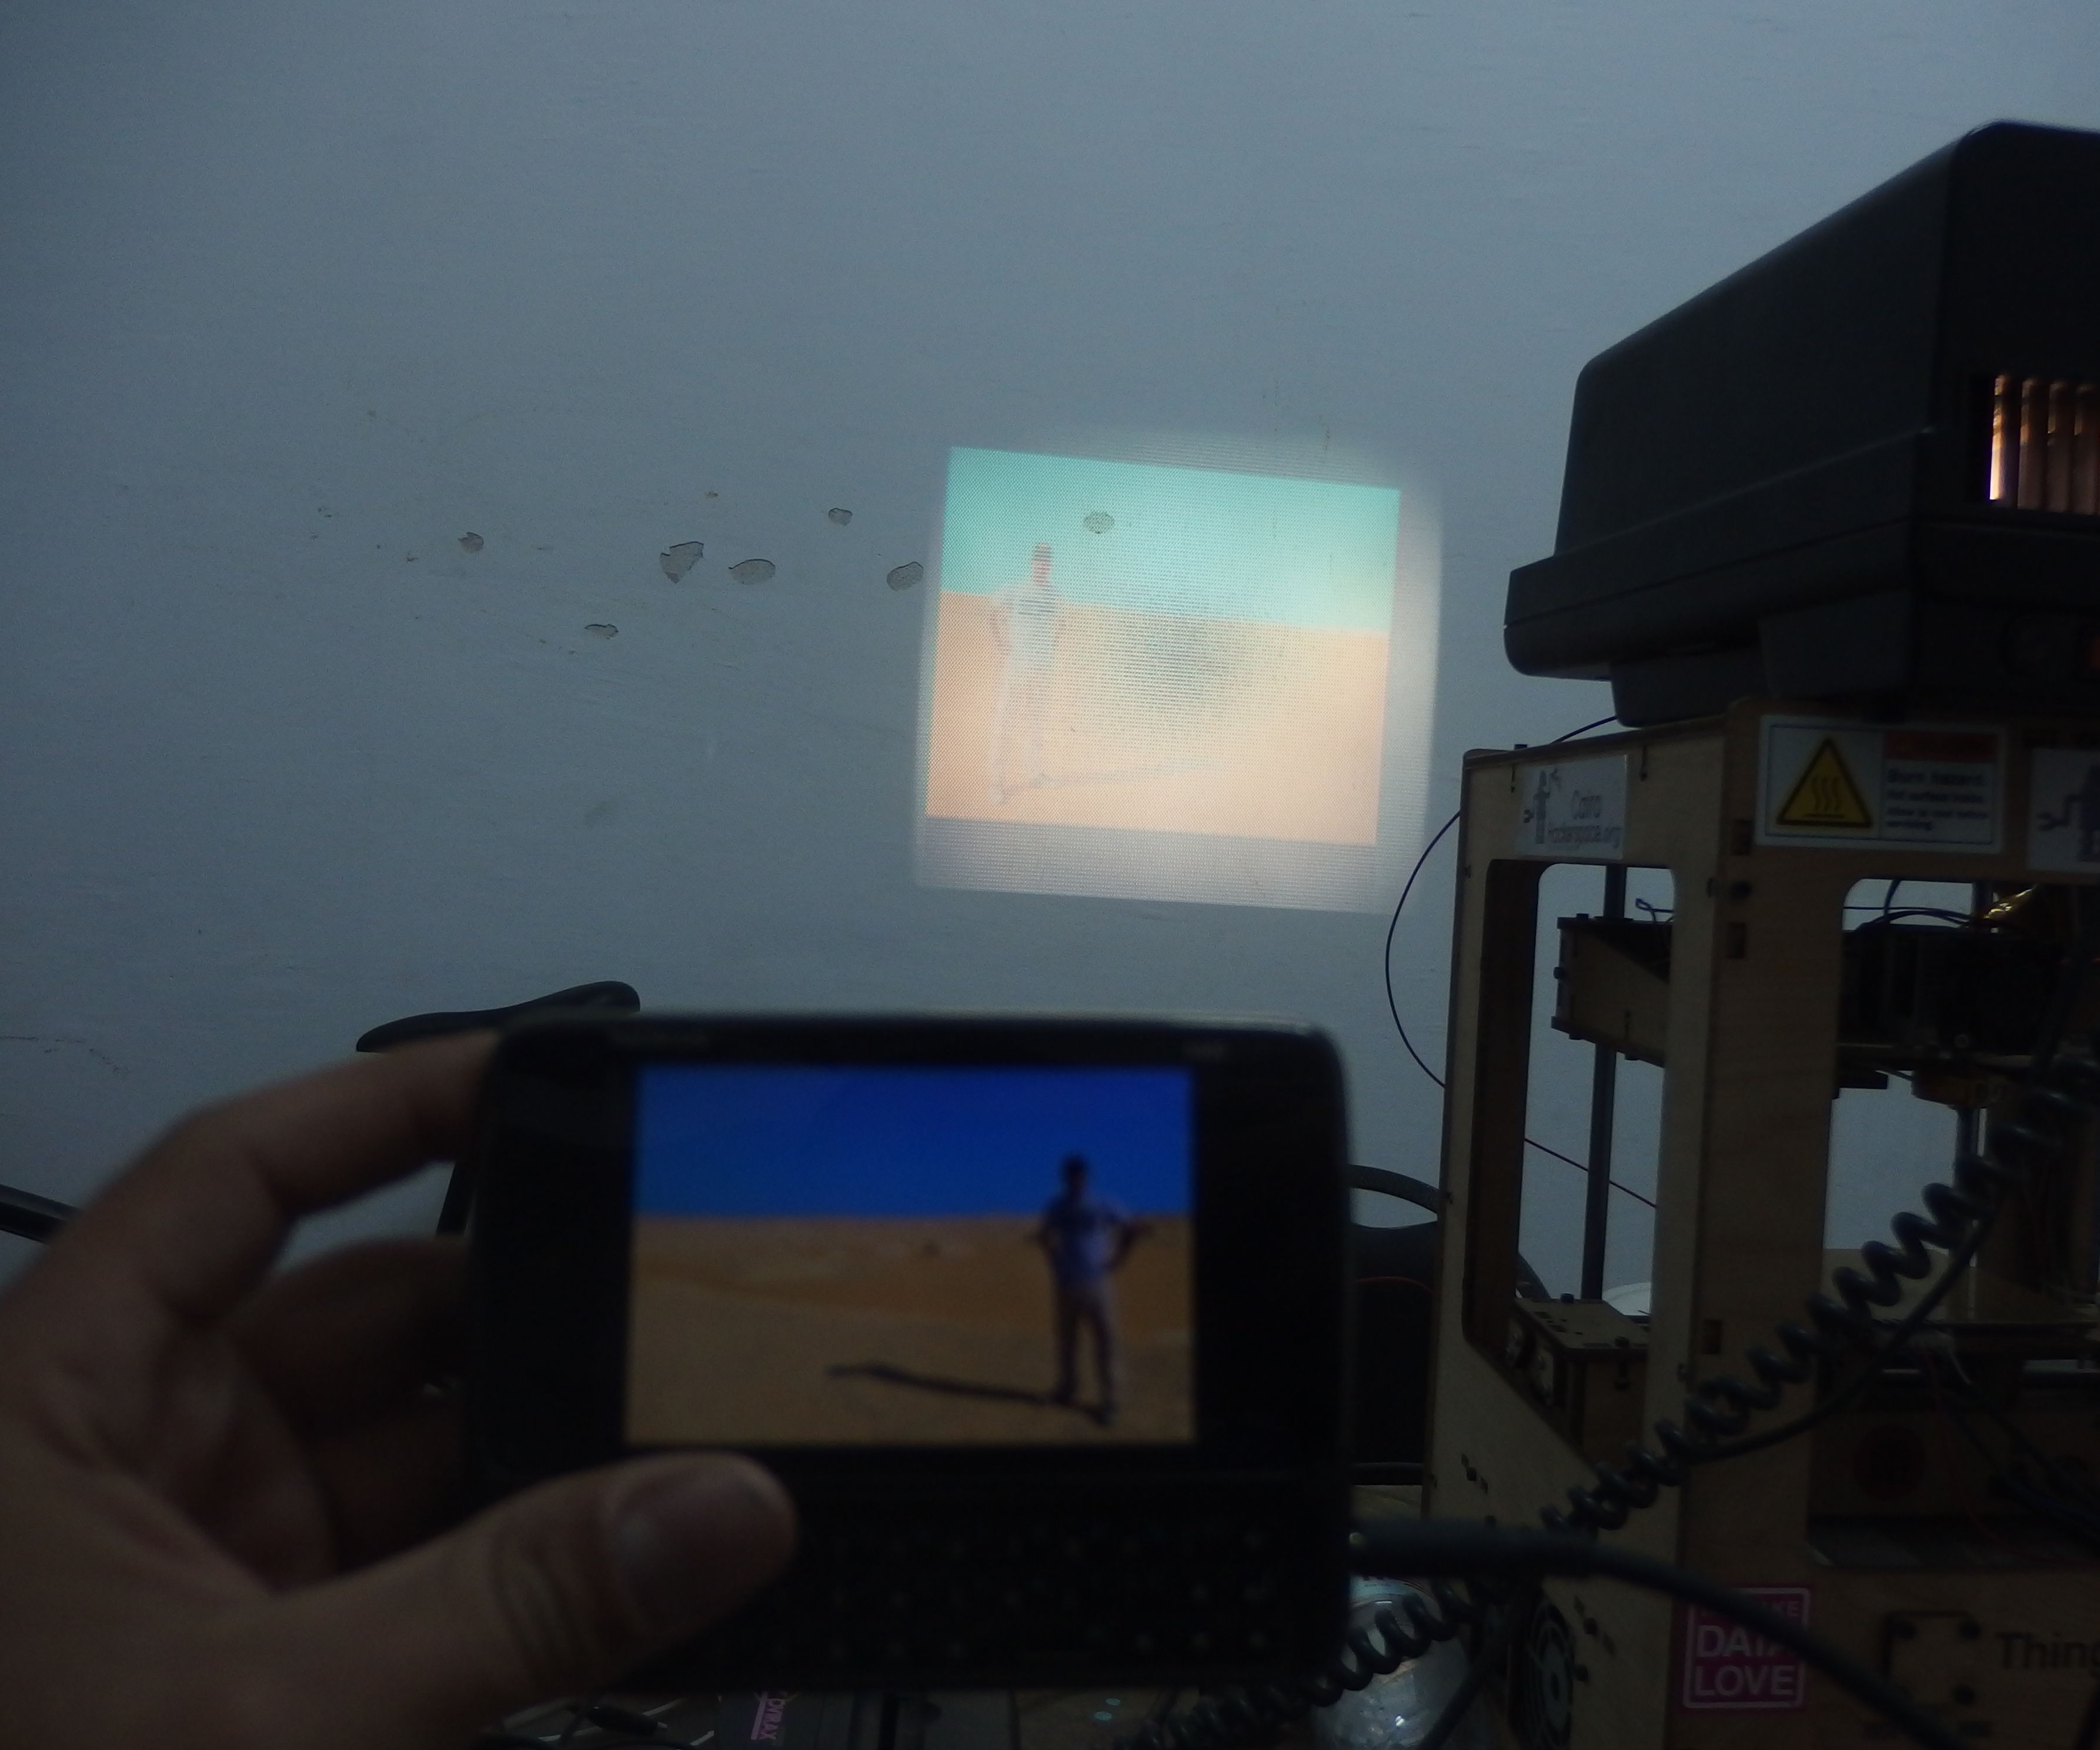 Convert a 40 years old DIA slide projector to a Decent DIY Projector!